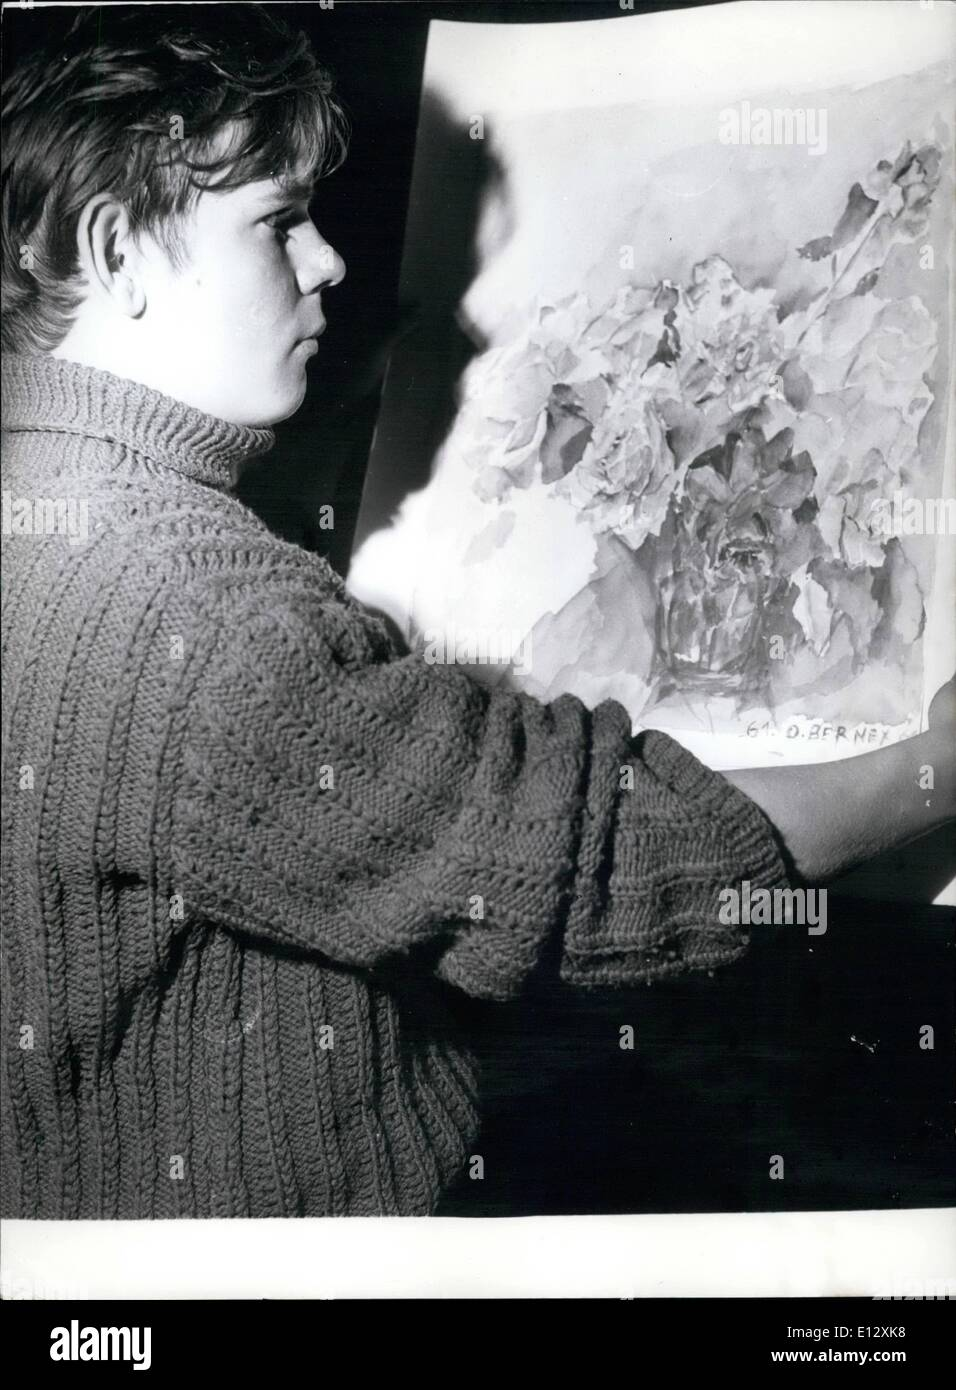 Feb. 26, 2012 - Fifteen Year Old Painter Exhibits in Paris. A left bank art gallery is now showing the painting done by a fifteen year old painter Olivier Bernex. OPS: The Youthful artist pictured before one of his paintings. - Stock Image